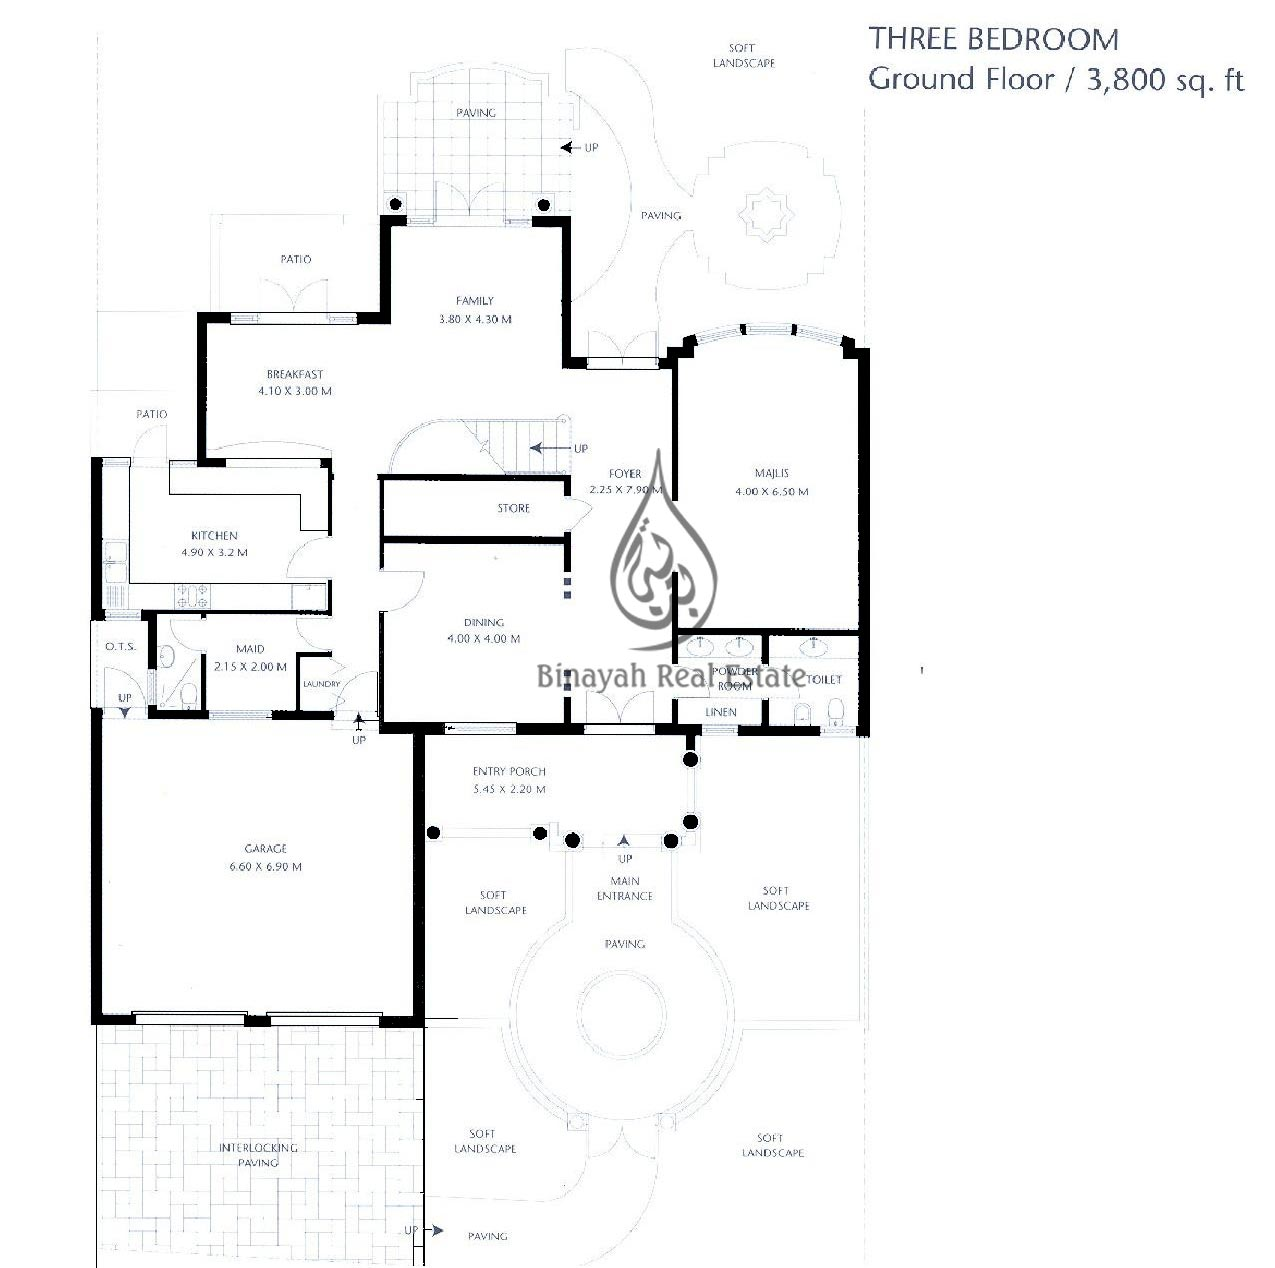 typical wiring diagram for a house viper 350 hv bedroom basement